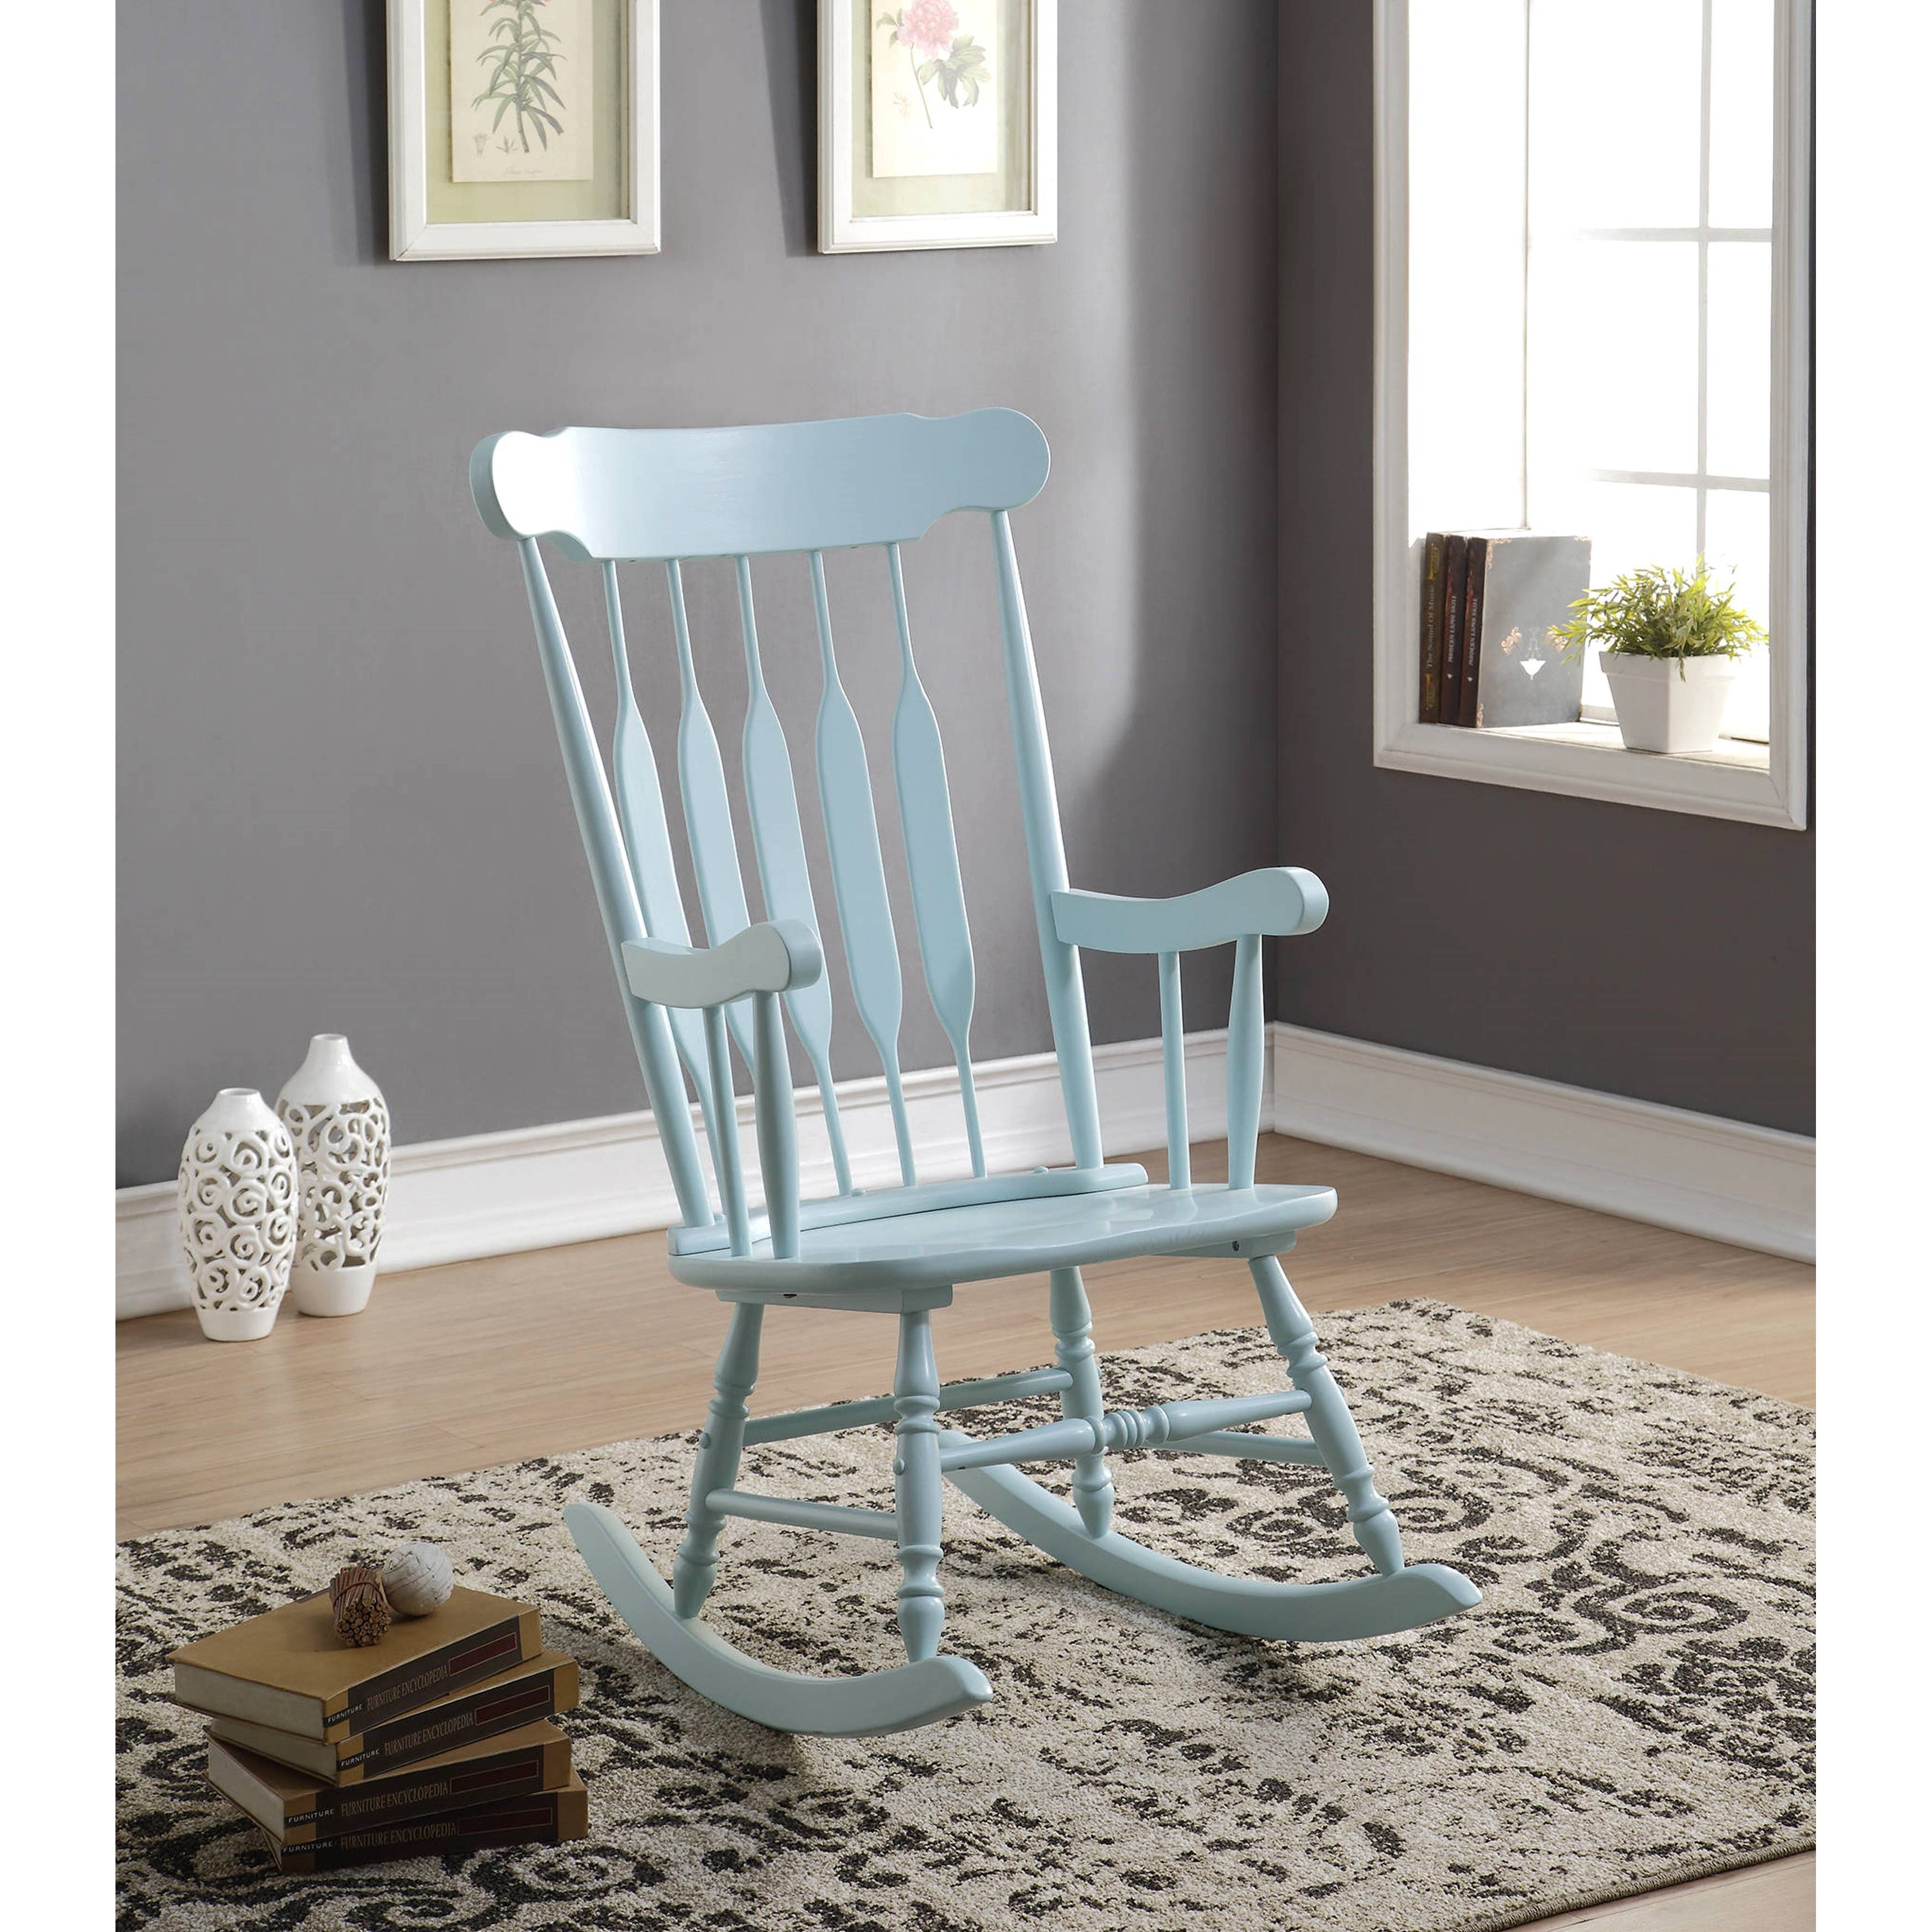 Inspiration about Windsor Arrow Back Country Style Light Blue Rocking Chair Intended For Windsor Arrow Back Country Style Rocking Chairs (#3 of 20)